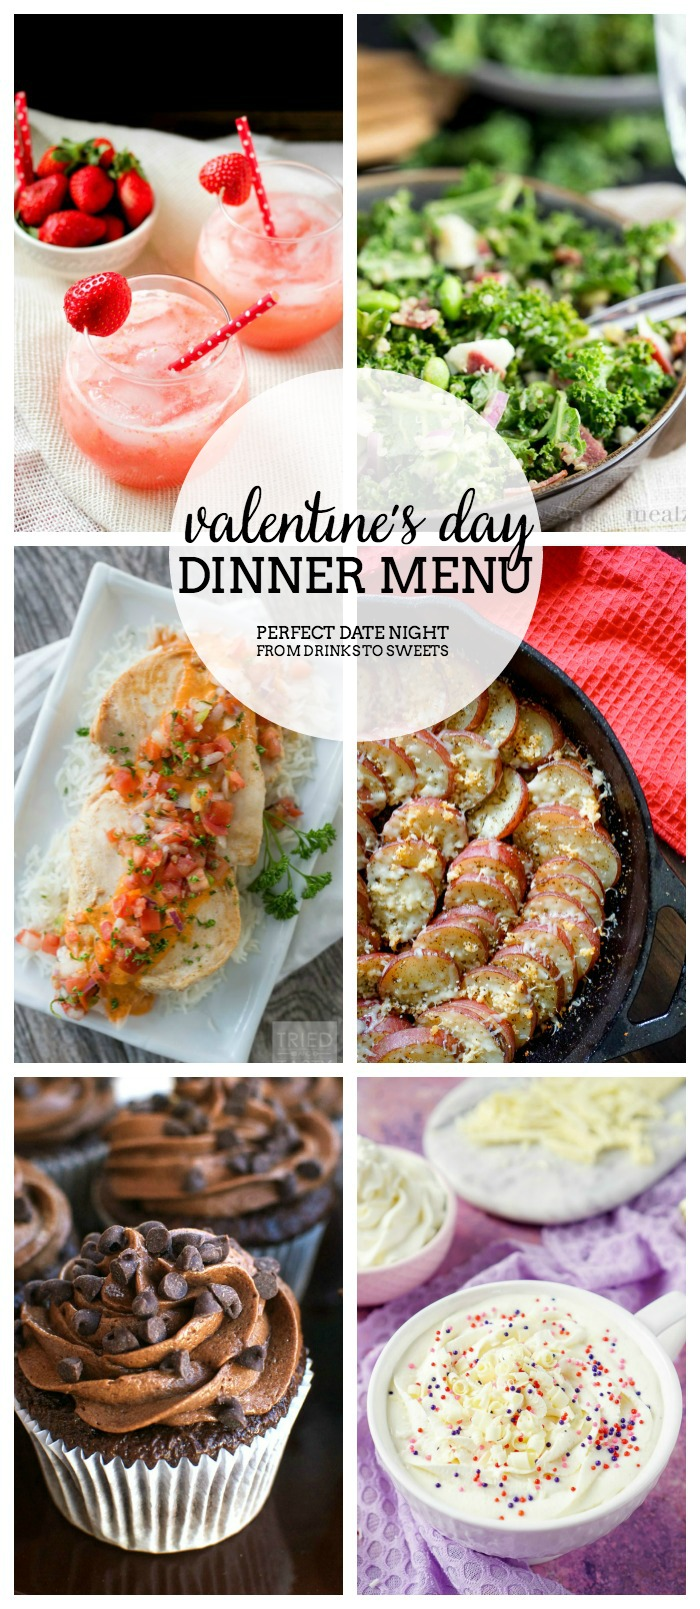 Valentine S Day Dinner Menu We Have Put Together The Perfect Date Night At Home